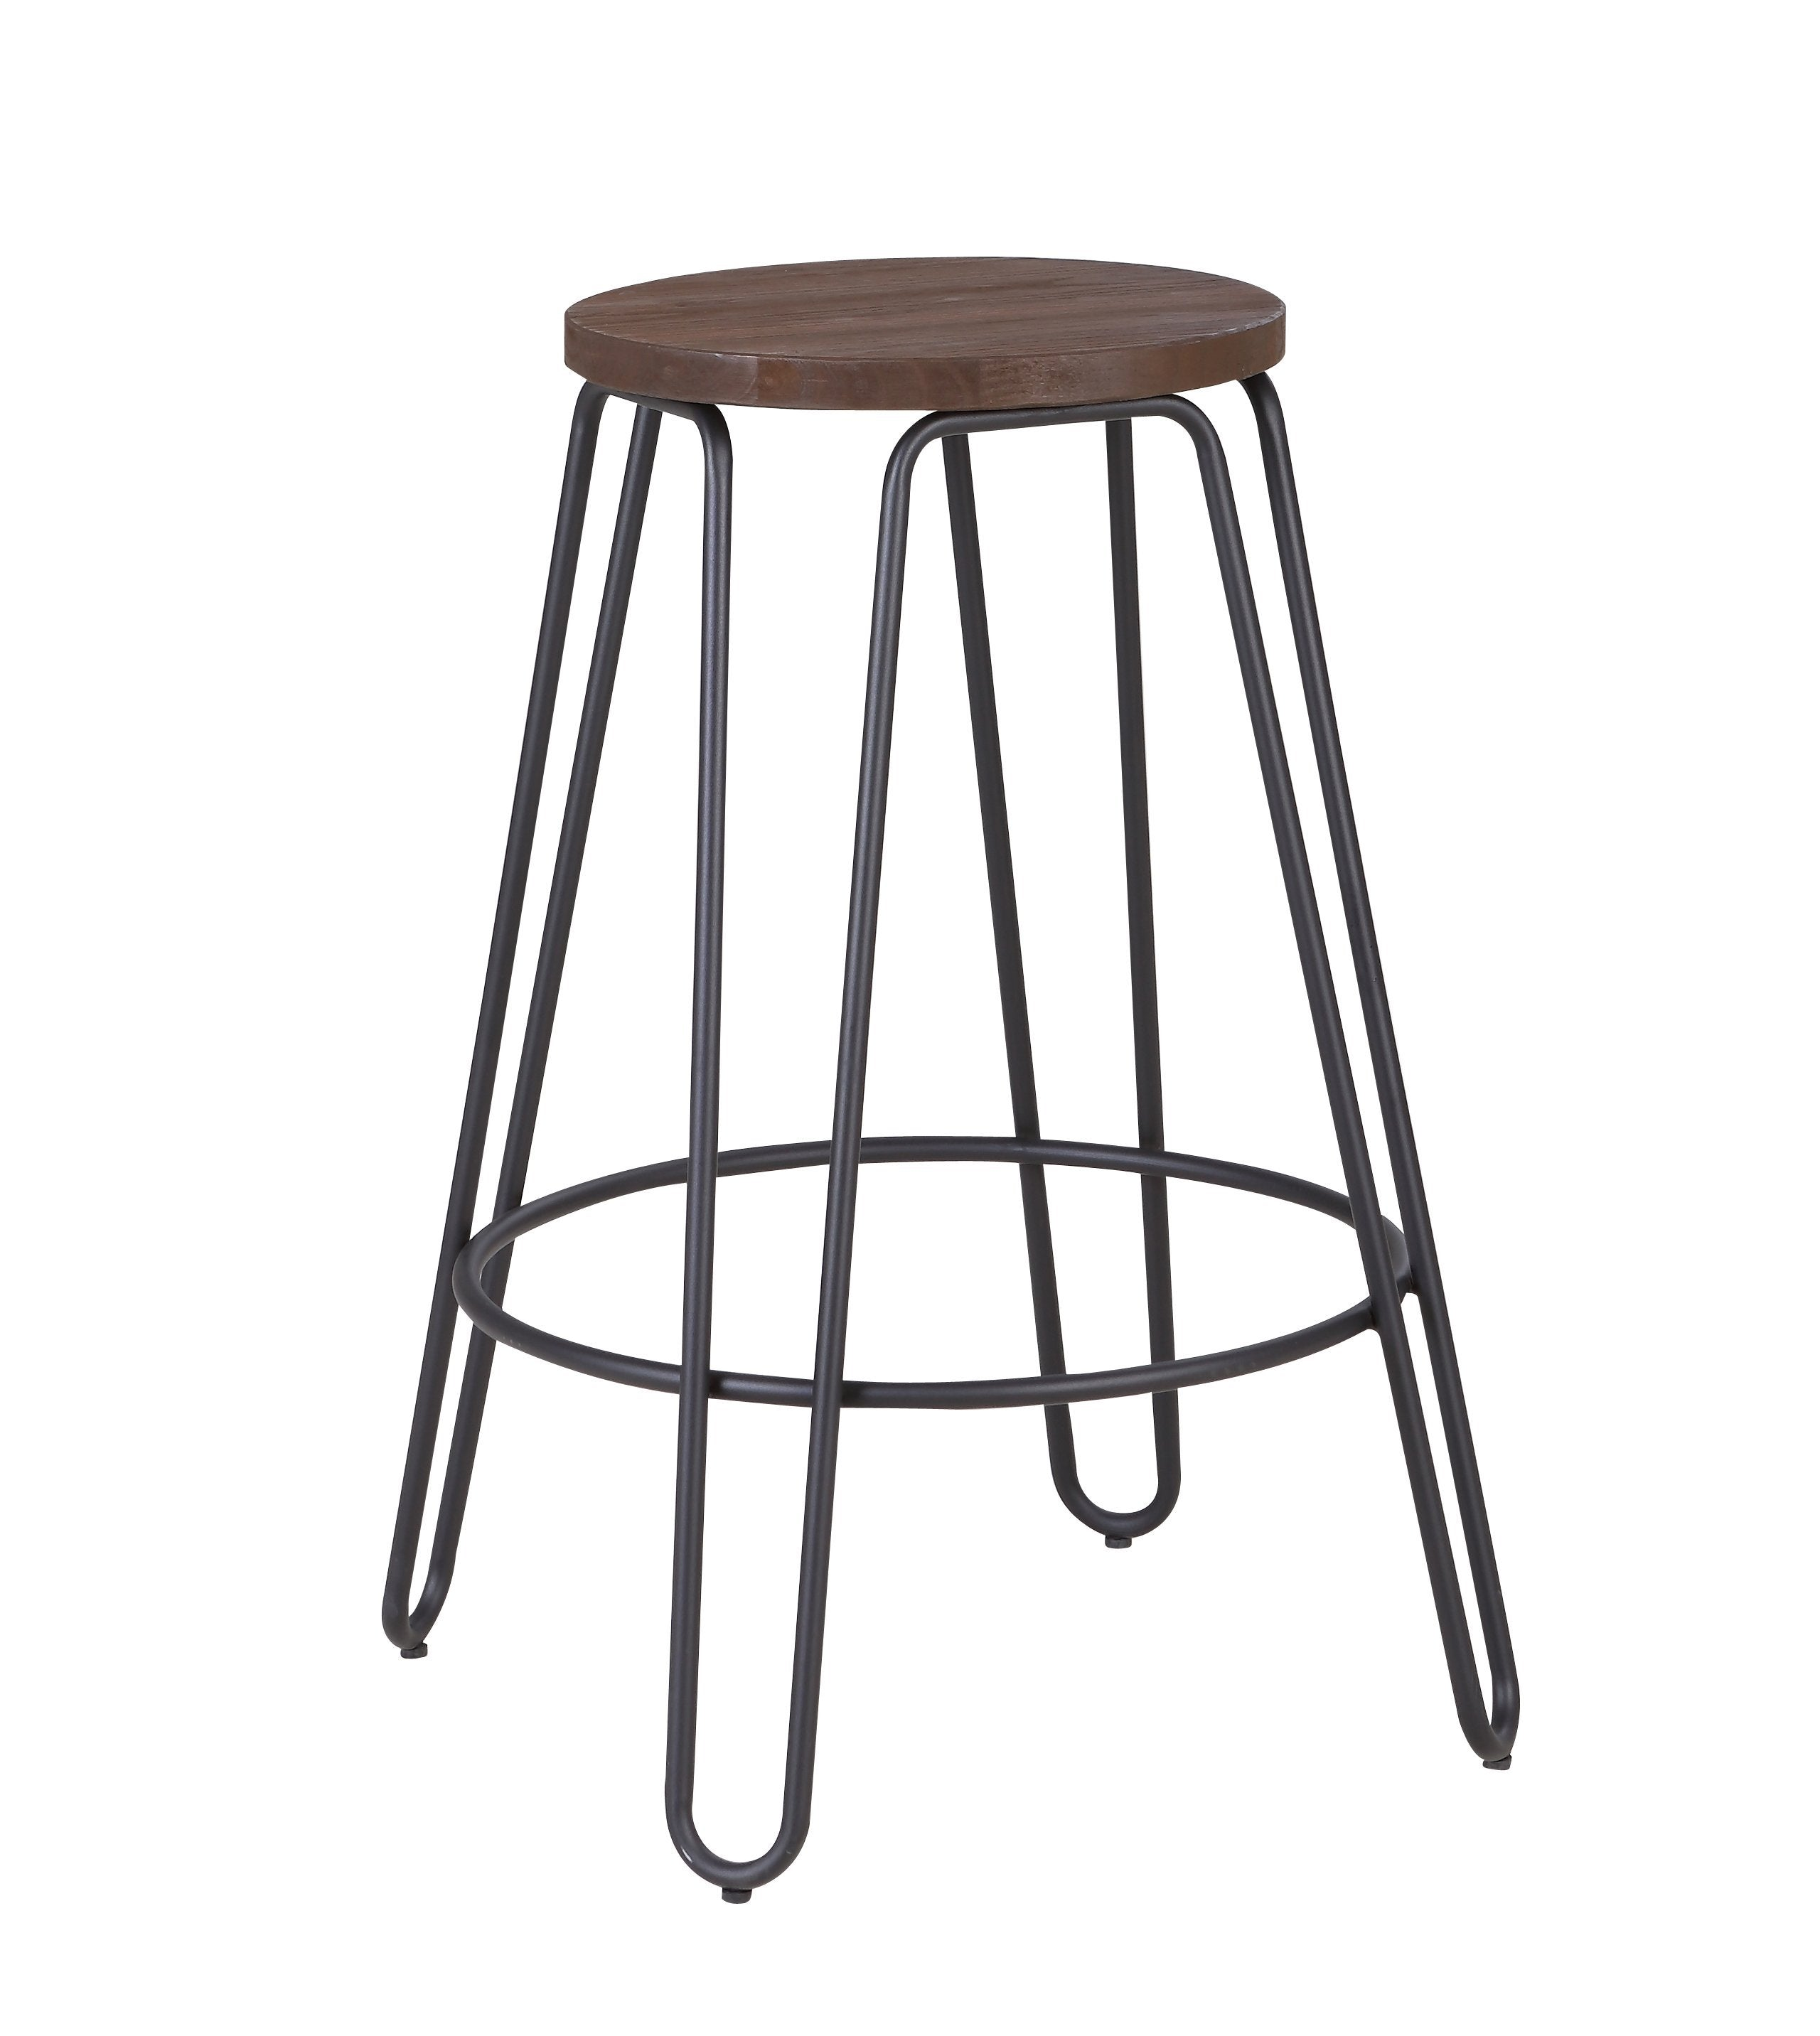 info for d8549 df12d HairPin 66cm Bar Stool Matt Black - Buy Online - AFTERPAY Available, Perth,  Sydney, Melbourne